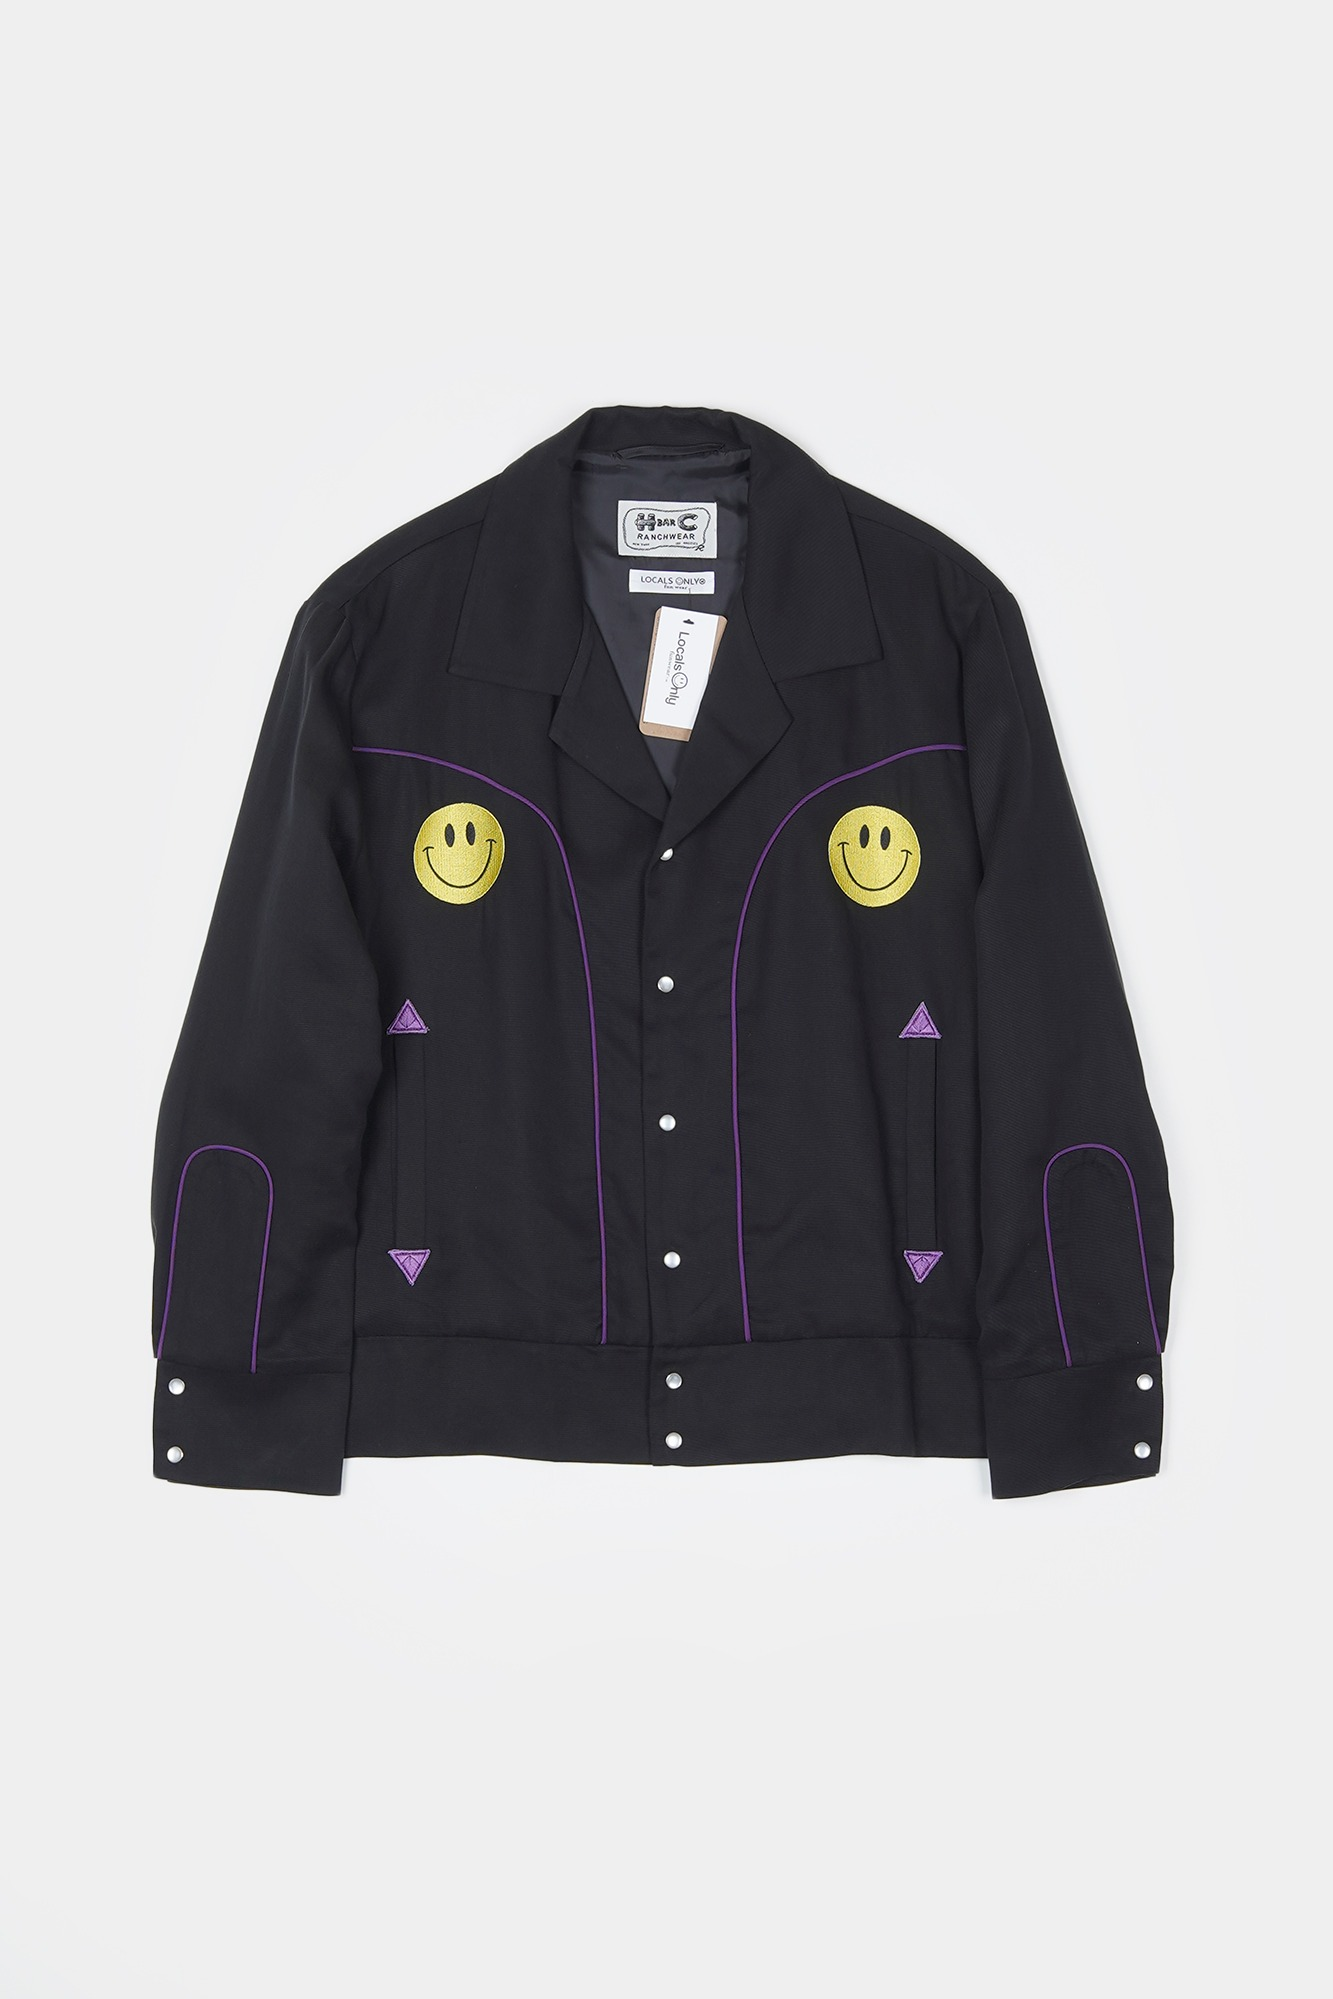 "[Collaboration]LOCALS ONLY X HbarC Western Bollero Jacket ""Black"""